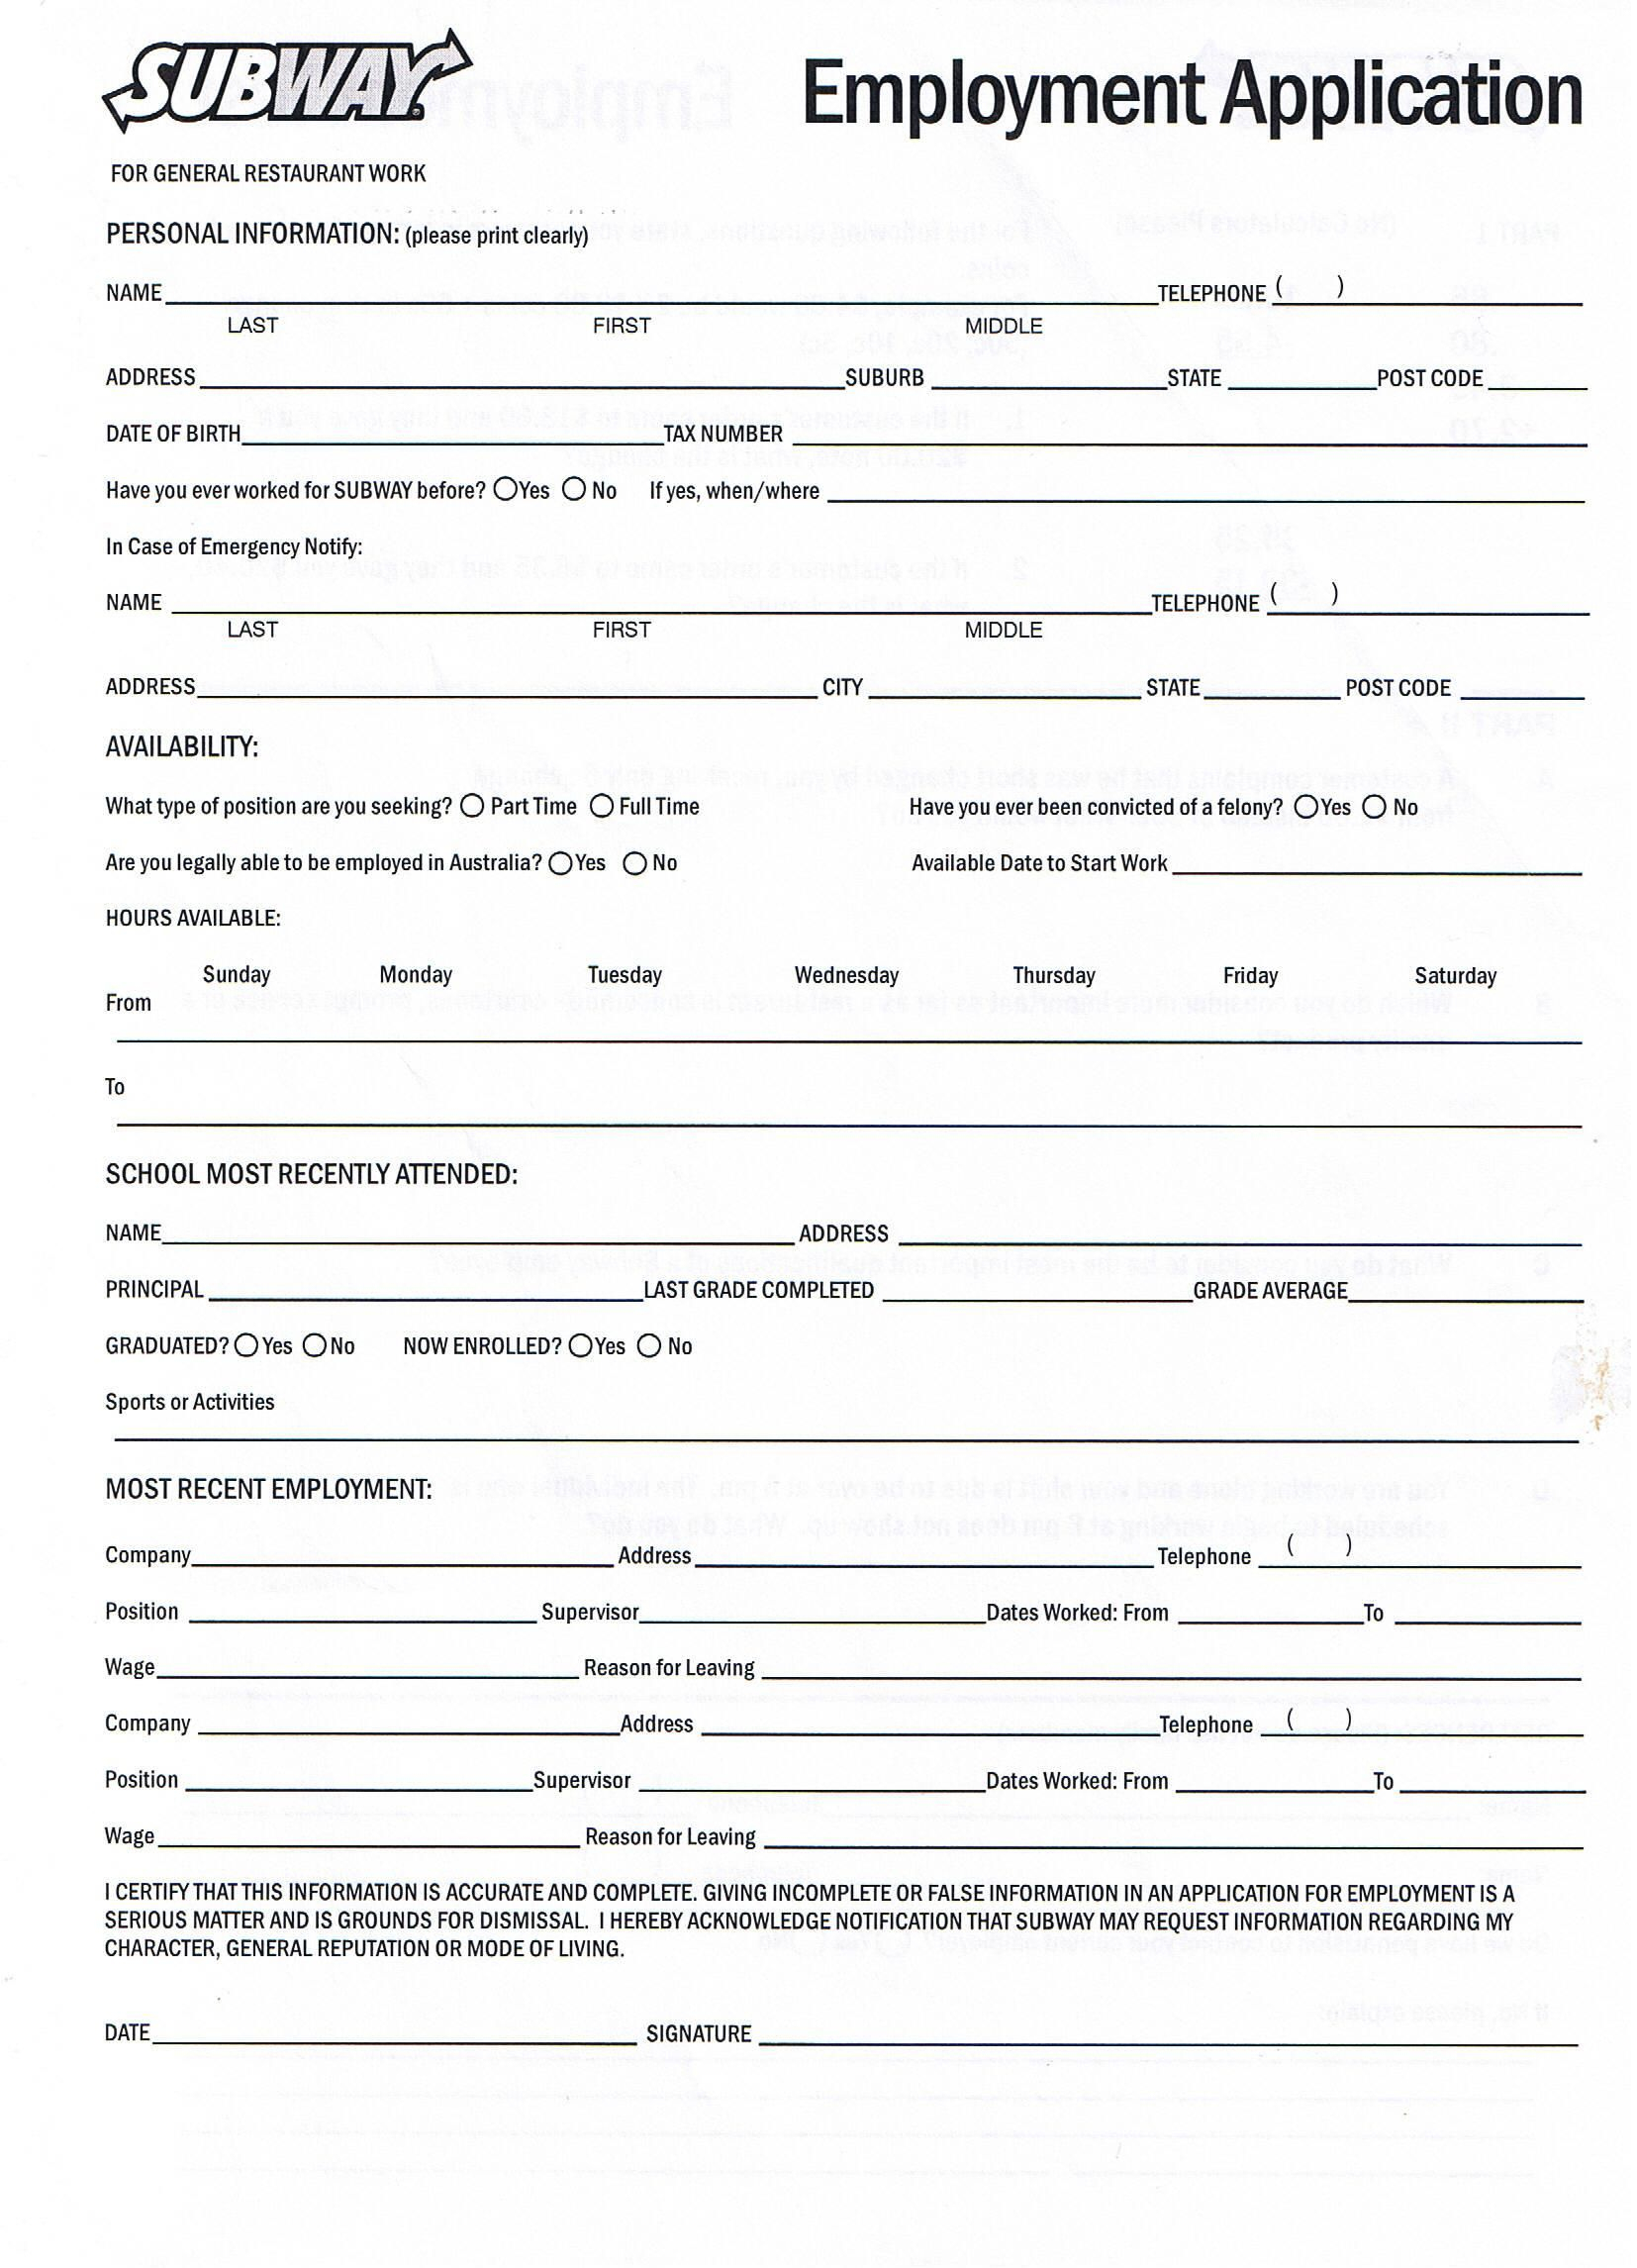 Printable Job Application Forms Online Forms, Download And Print - Free Printable Job Application